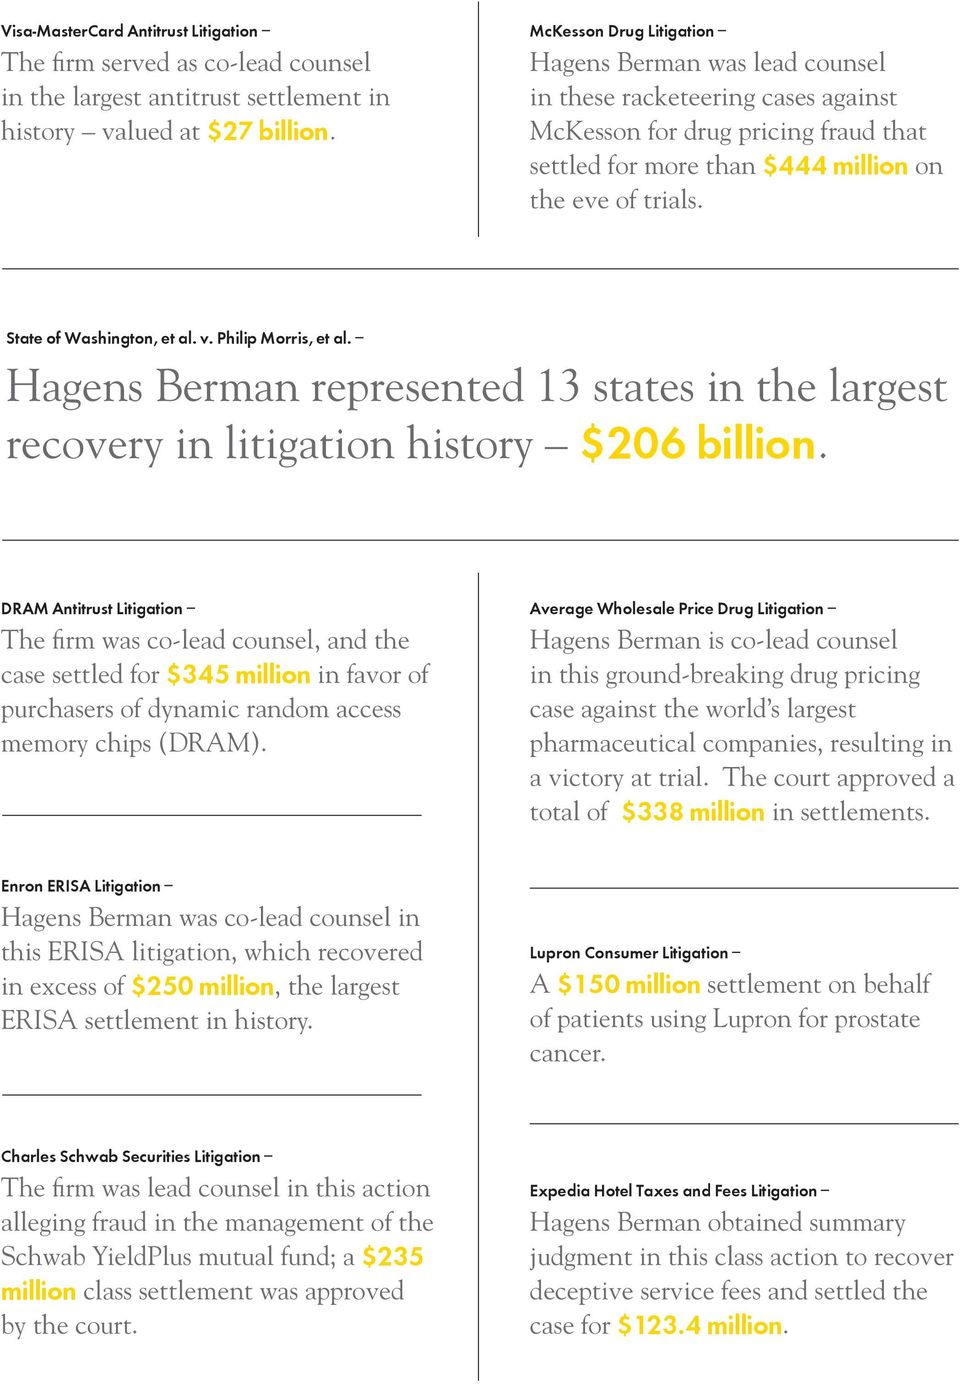 State of Washington, et al. v. Philip Morris, et al. Hagens Berman represented 13 states in the largest recovery in litigation history $206 billion.